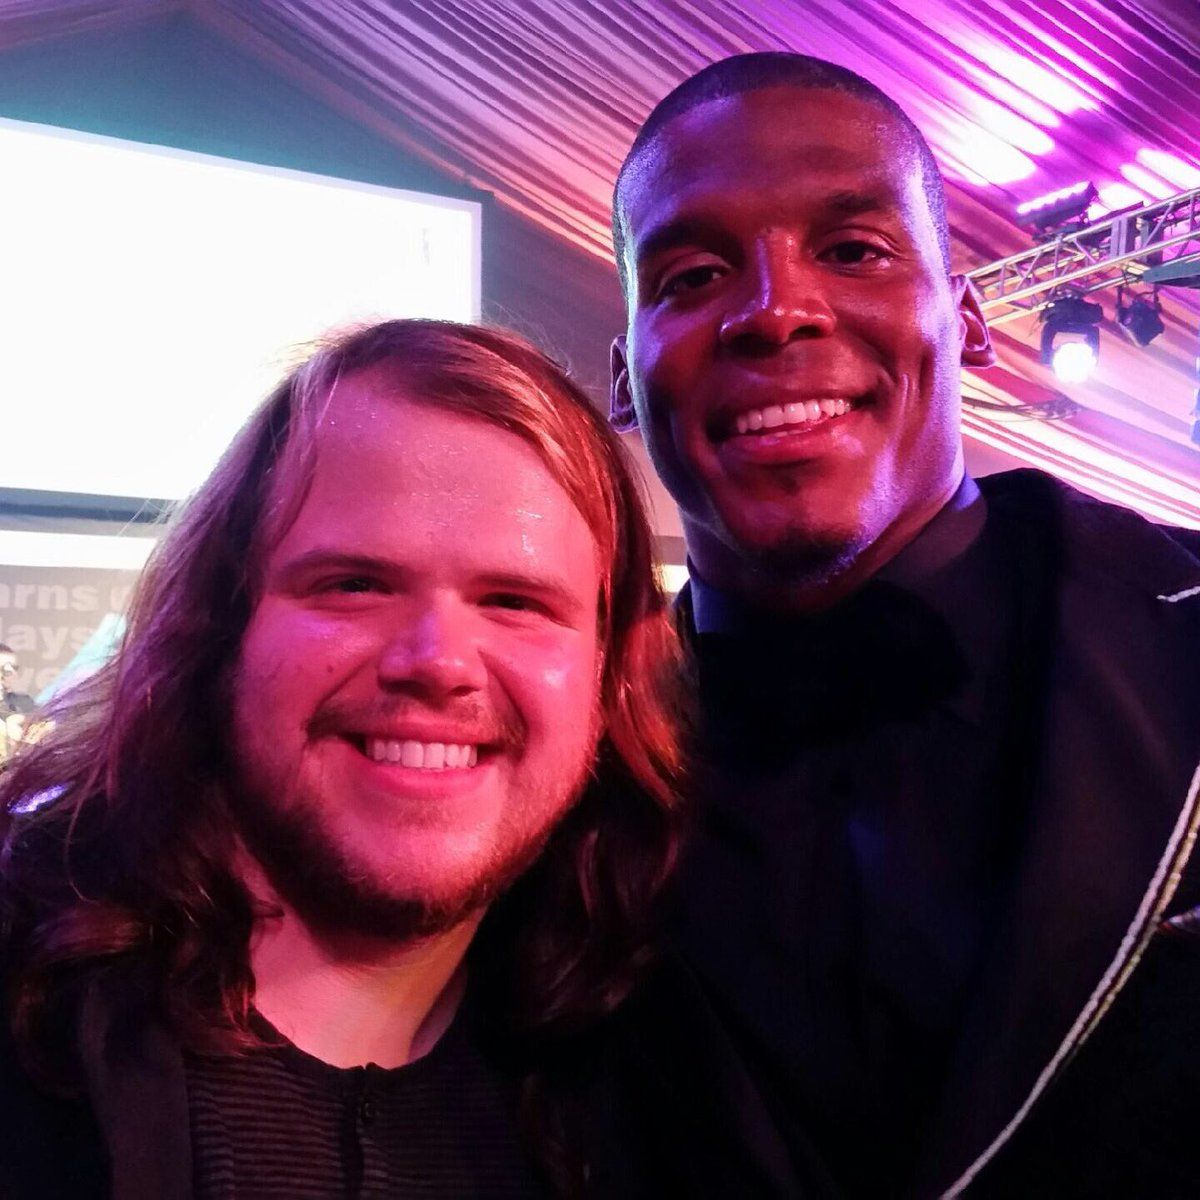 Had the honor of meeting him last night @CameronNewton thx for an inspiring evening @Panthers #